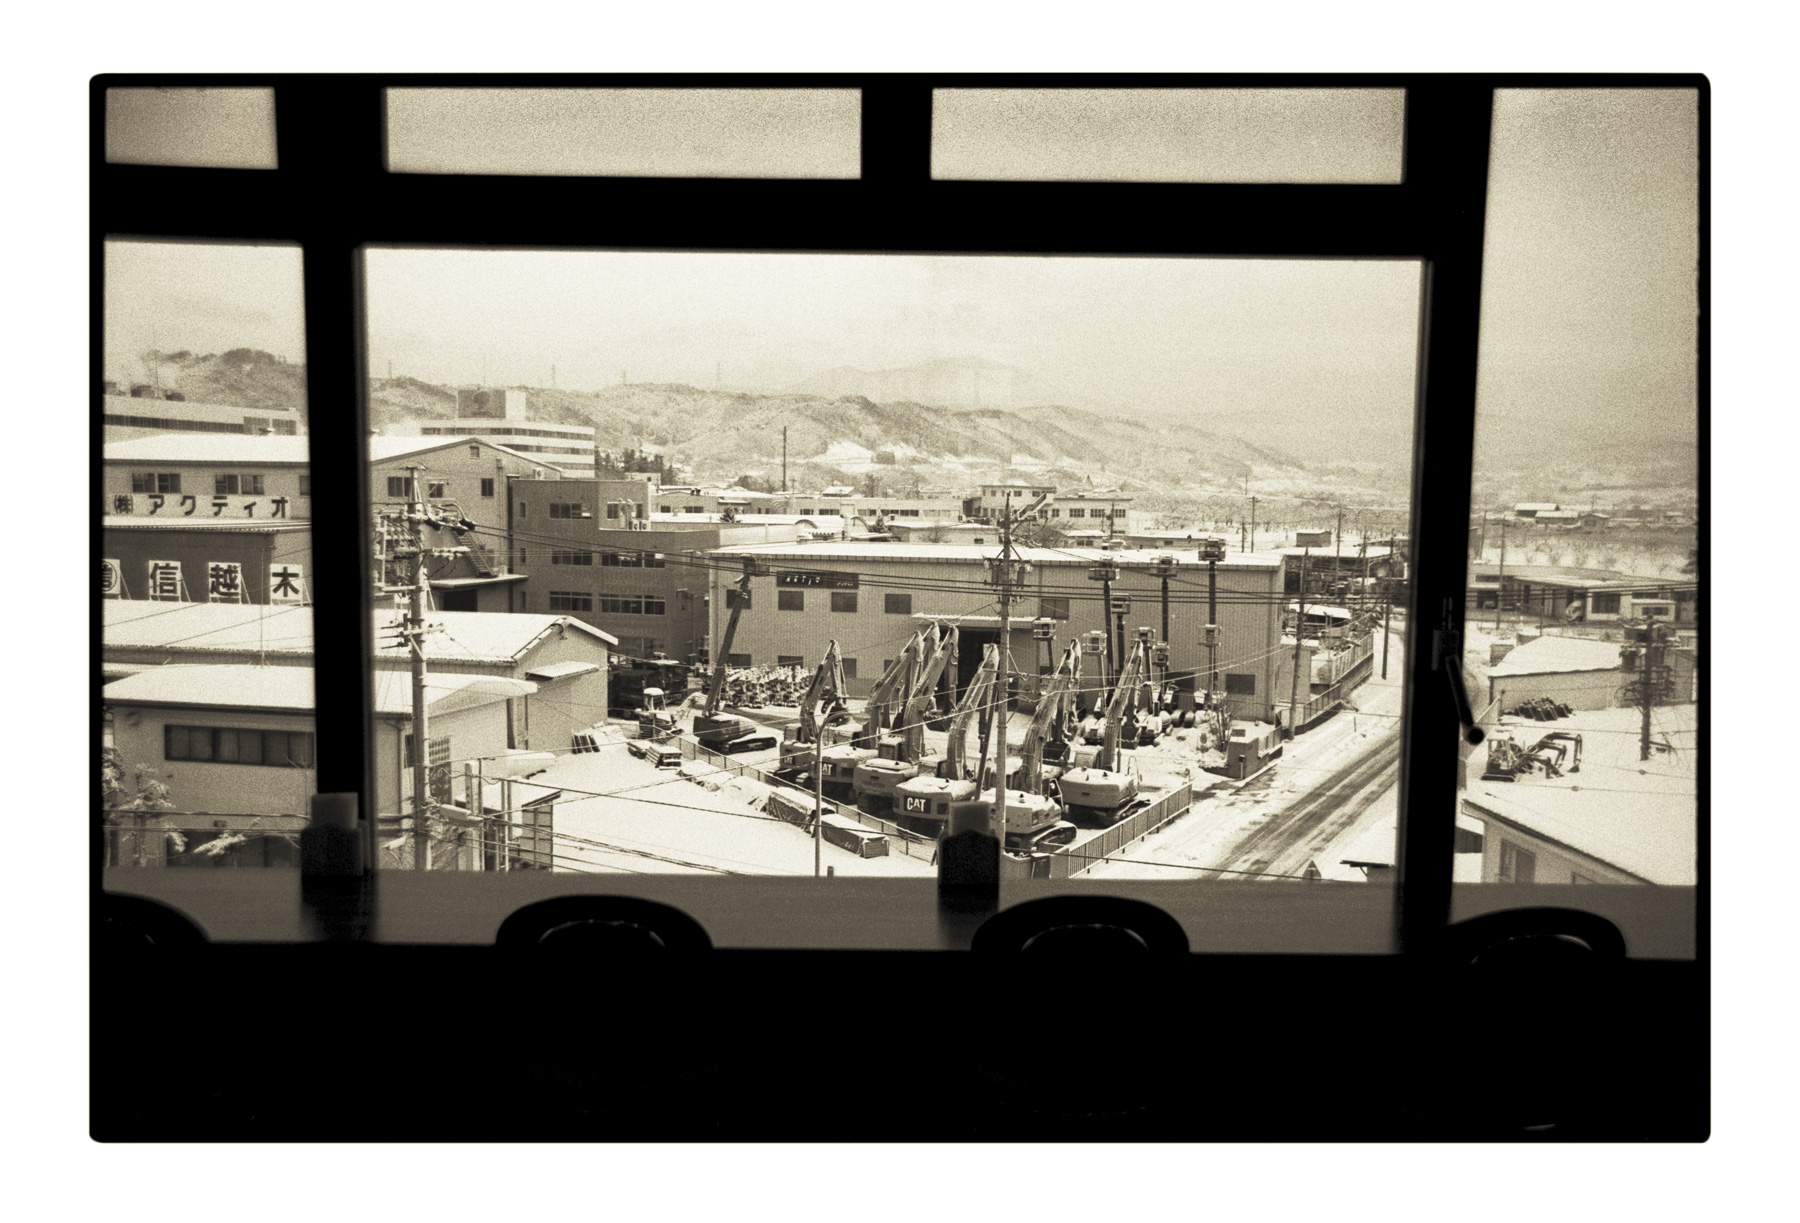 f5_tmax_444_view_from_morning_breakfast_of_cheap_road_motel_hd_cmyk